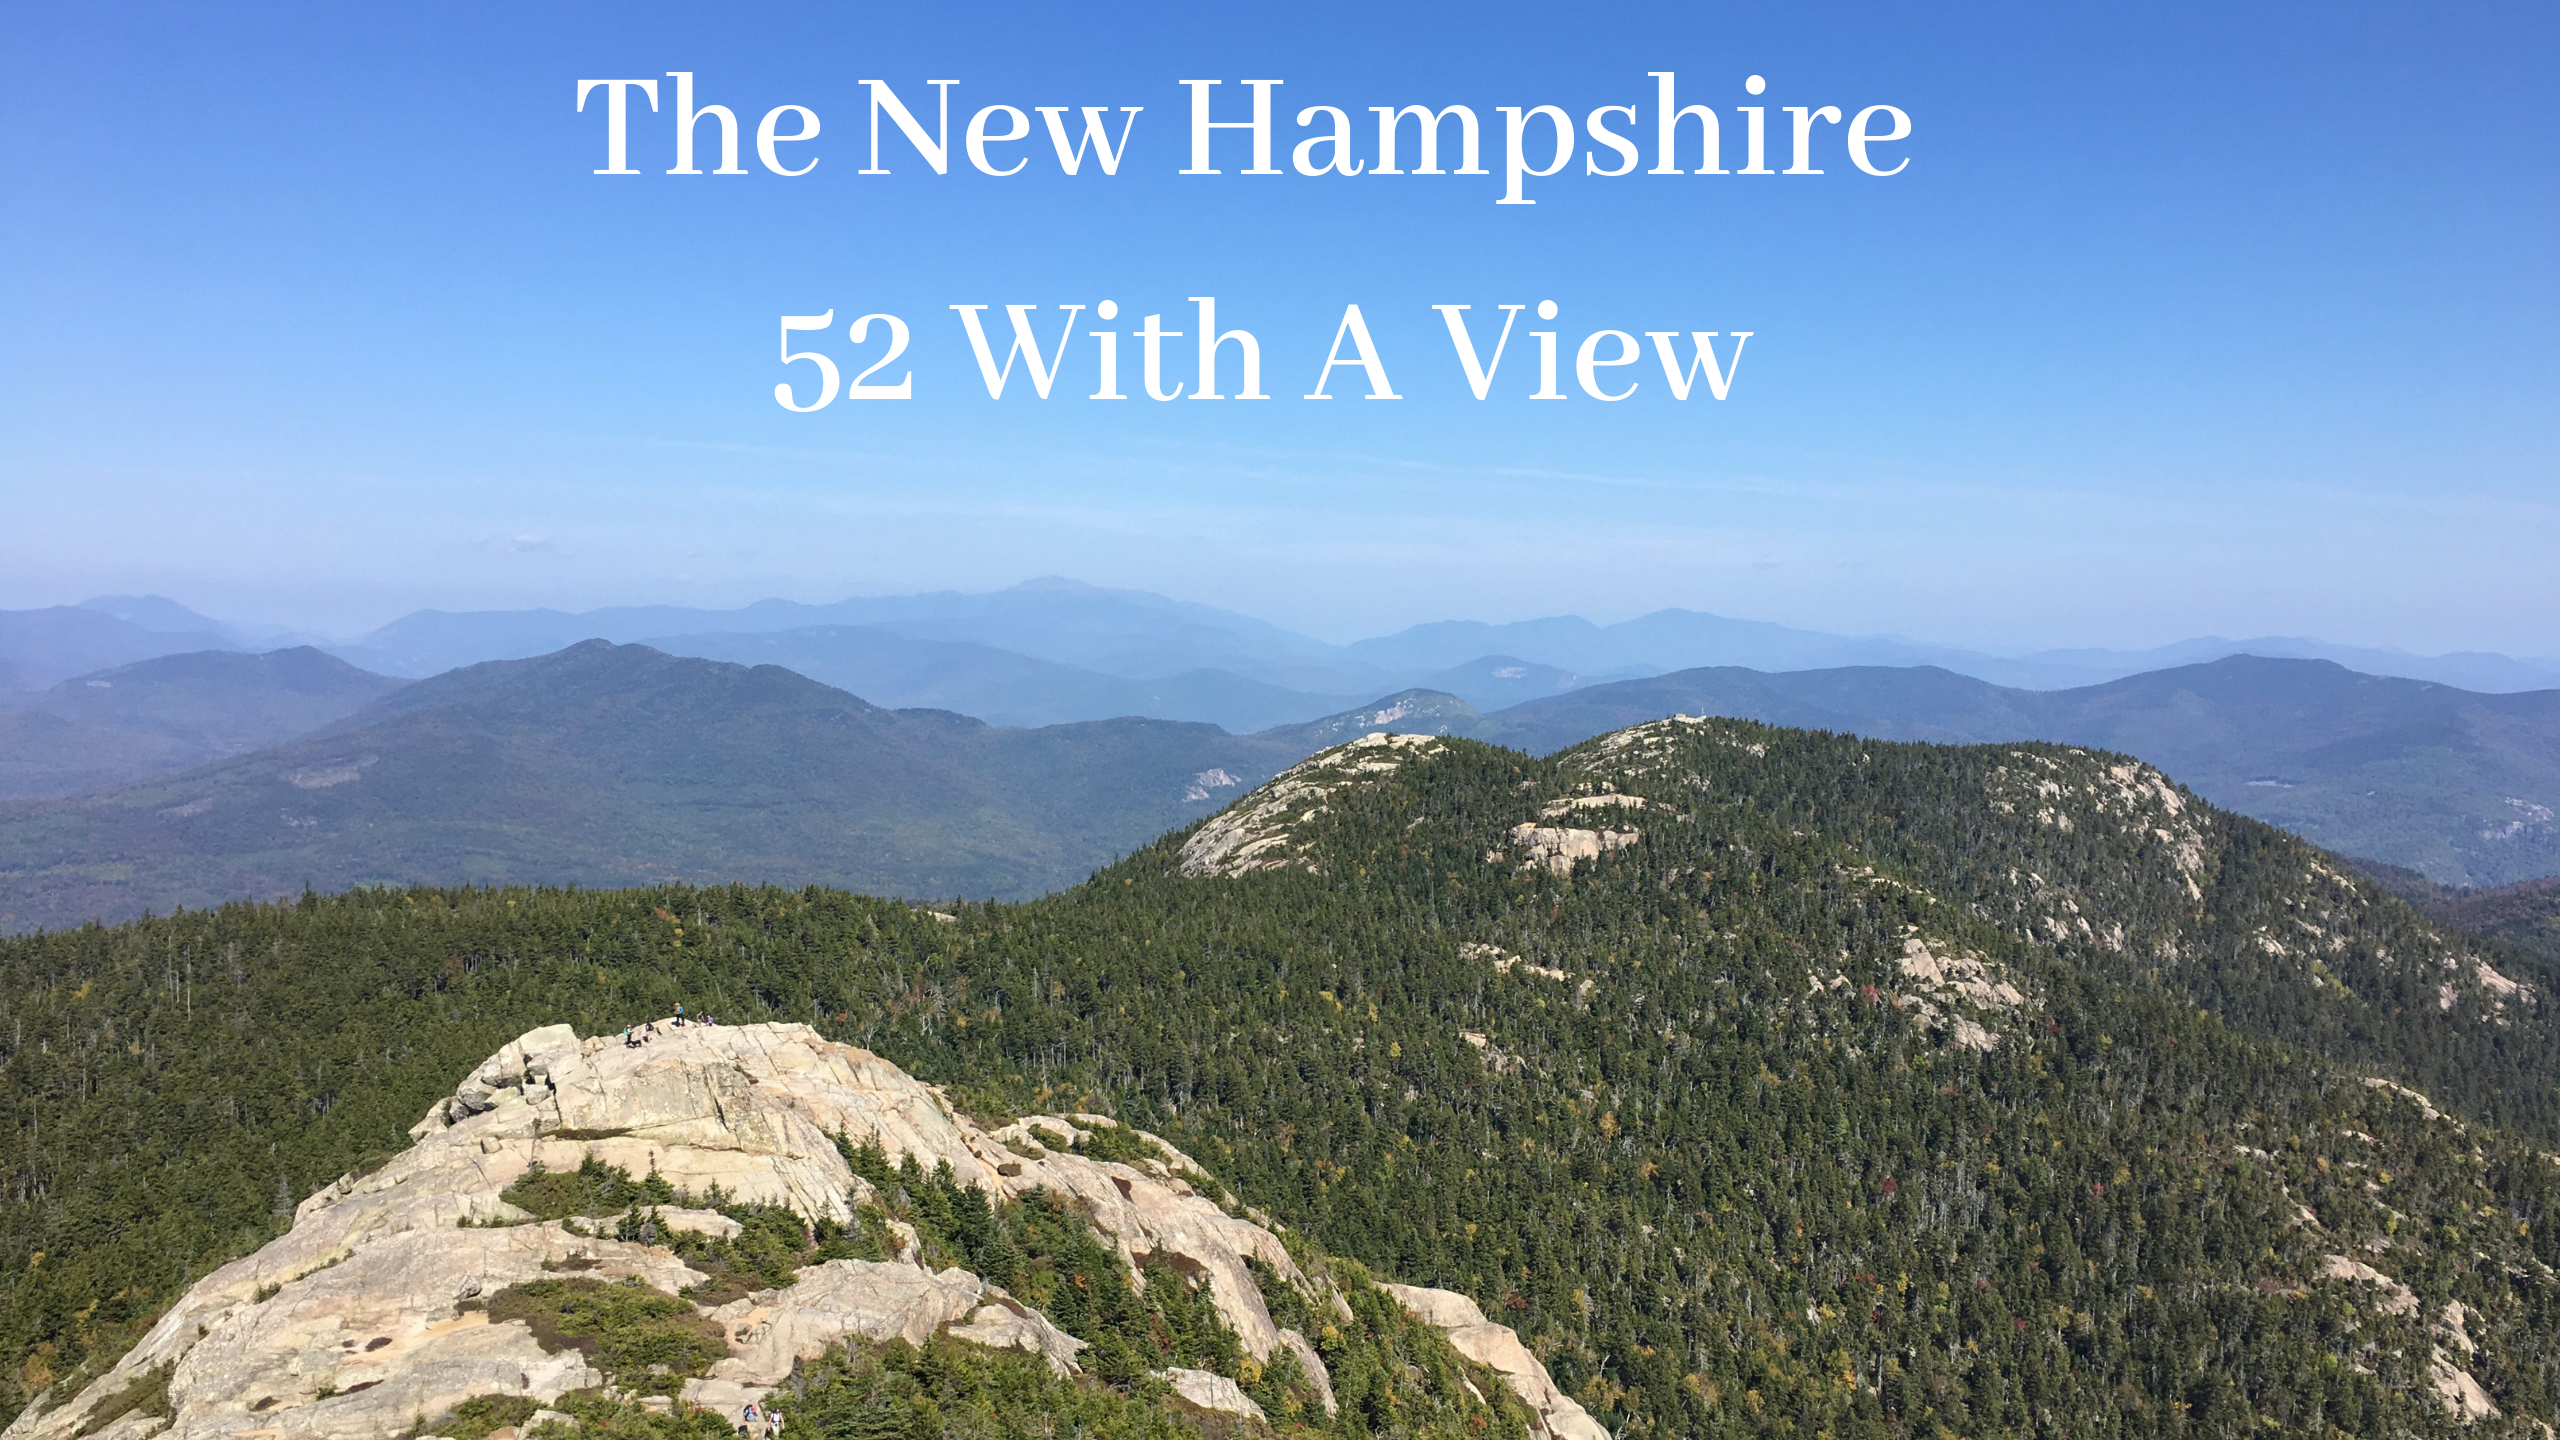 NH's 52 With a View (52 WAV) – Shorter Hikes With Stunning Views